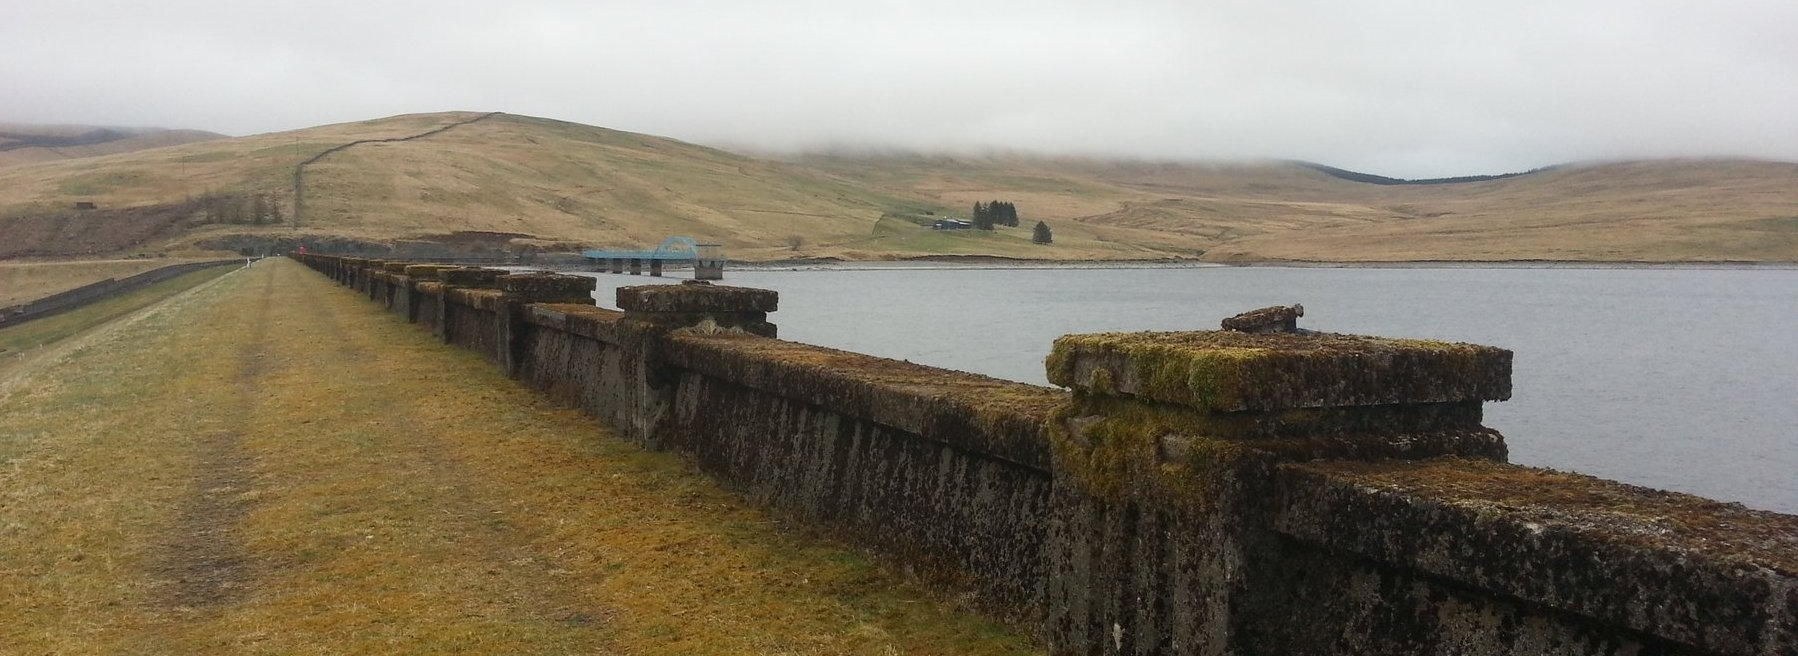 Crossing the dam at Daer Reservoir